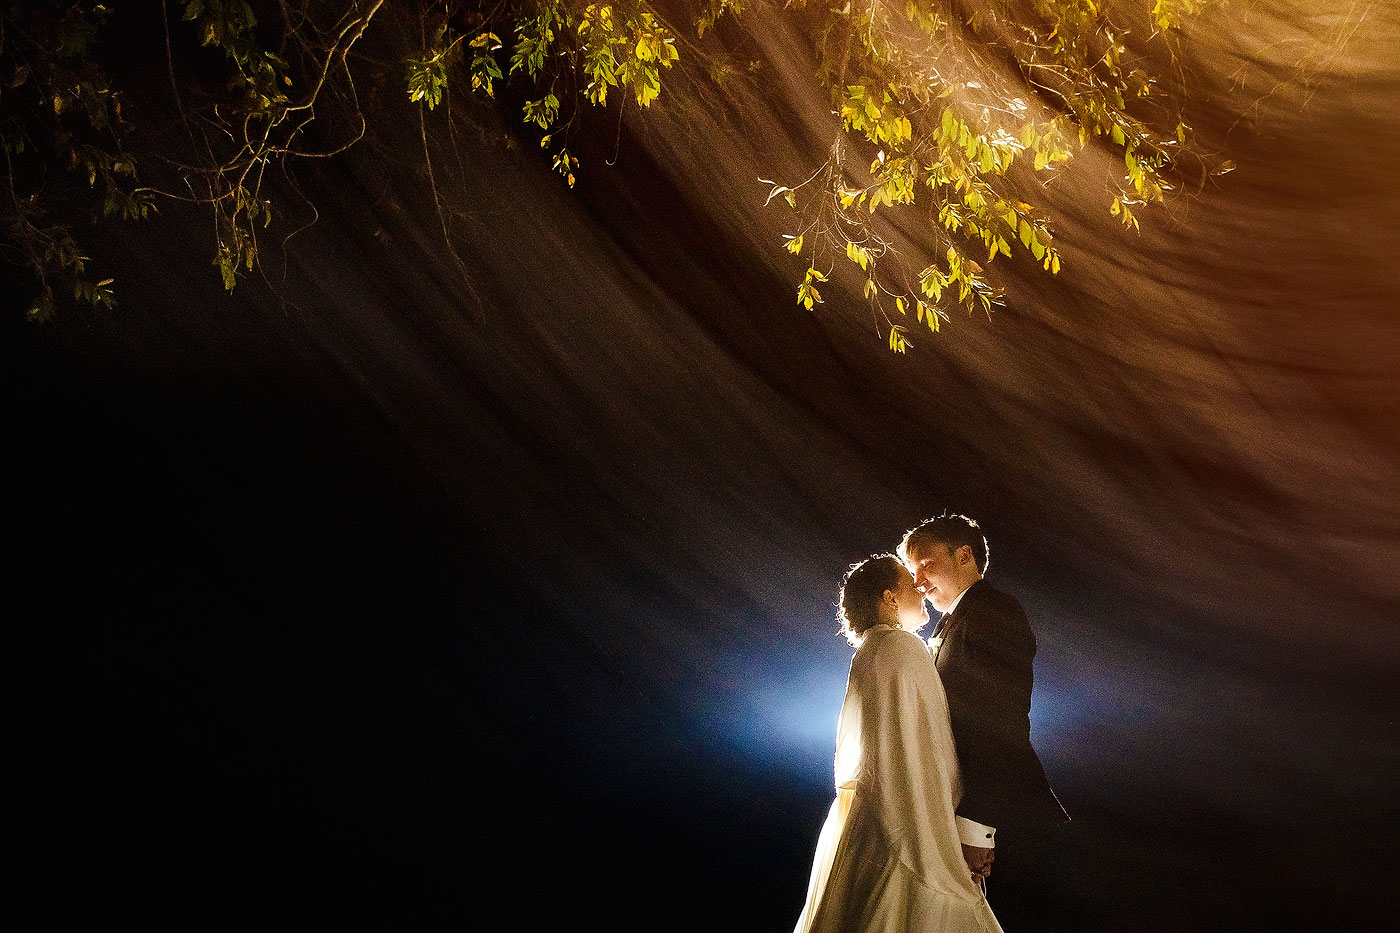 Creative Night Time Wedding Photography